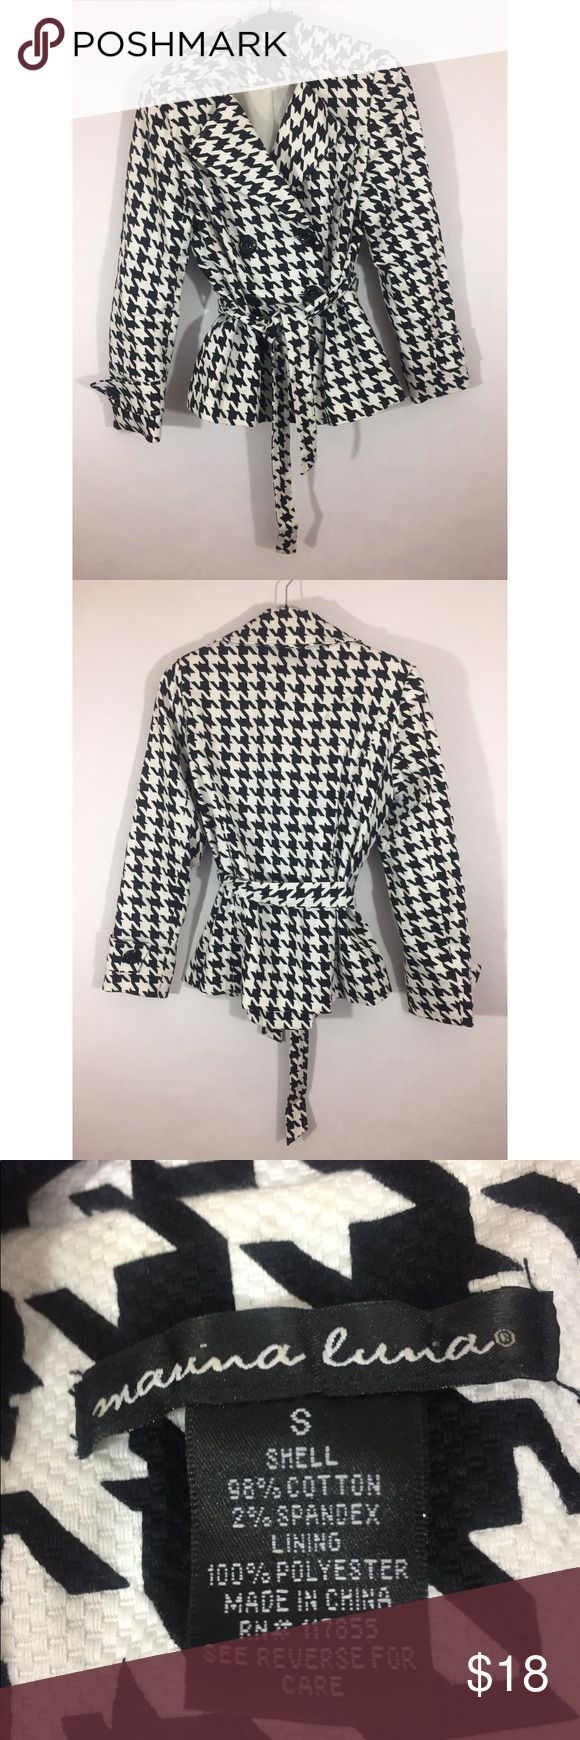 """Houndstooth belted peacoat Medium weight Marina Luna black and white houndstooth double breasted and belted jacket. Perfect for fall. Size small. Lined. Shell: cotton/spandex, lining: 100% polyester. Dry clean. Underarm to underarm: 19"""" Length: 24"""" marina luna Jackets & Coats Pea Coats"""